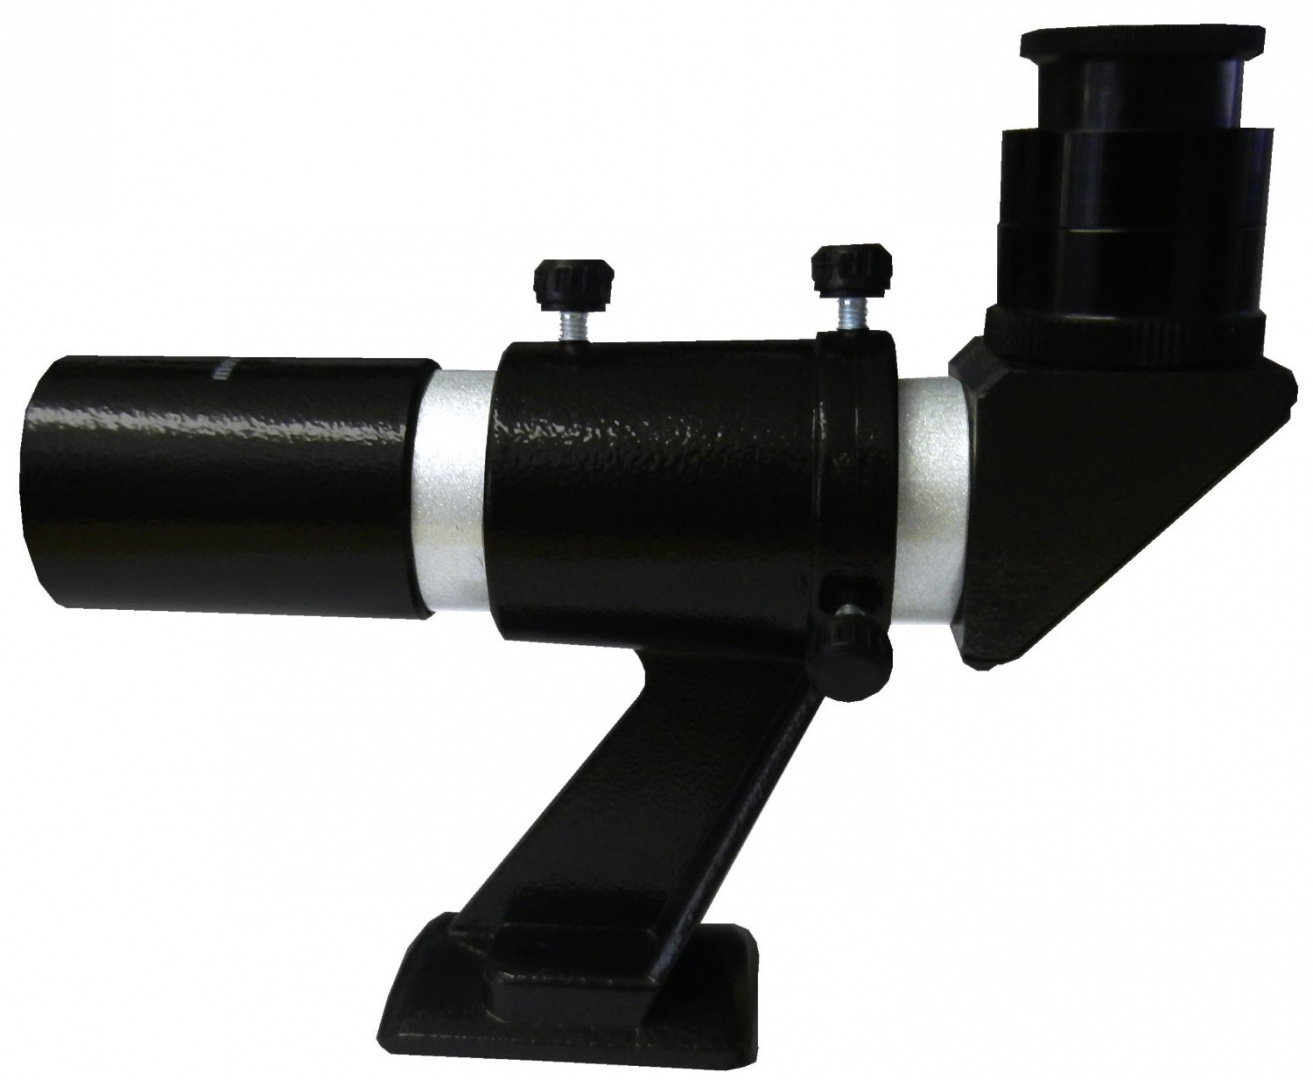 Seben 6x30 90° right angled telescope finder scope with crosshairs